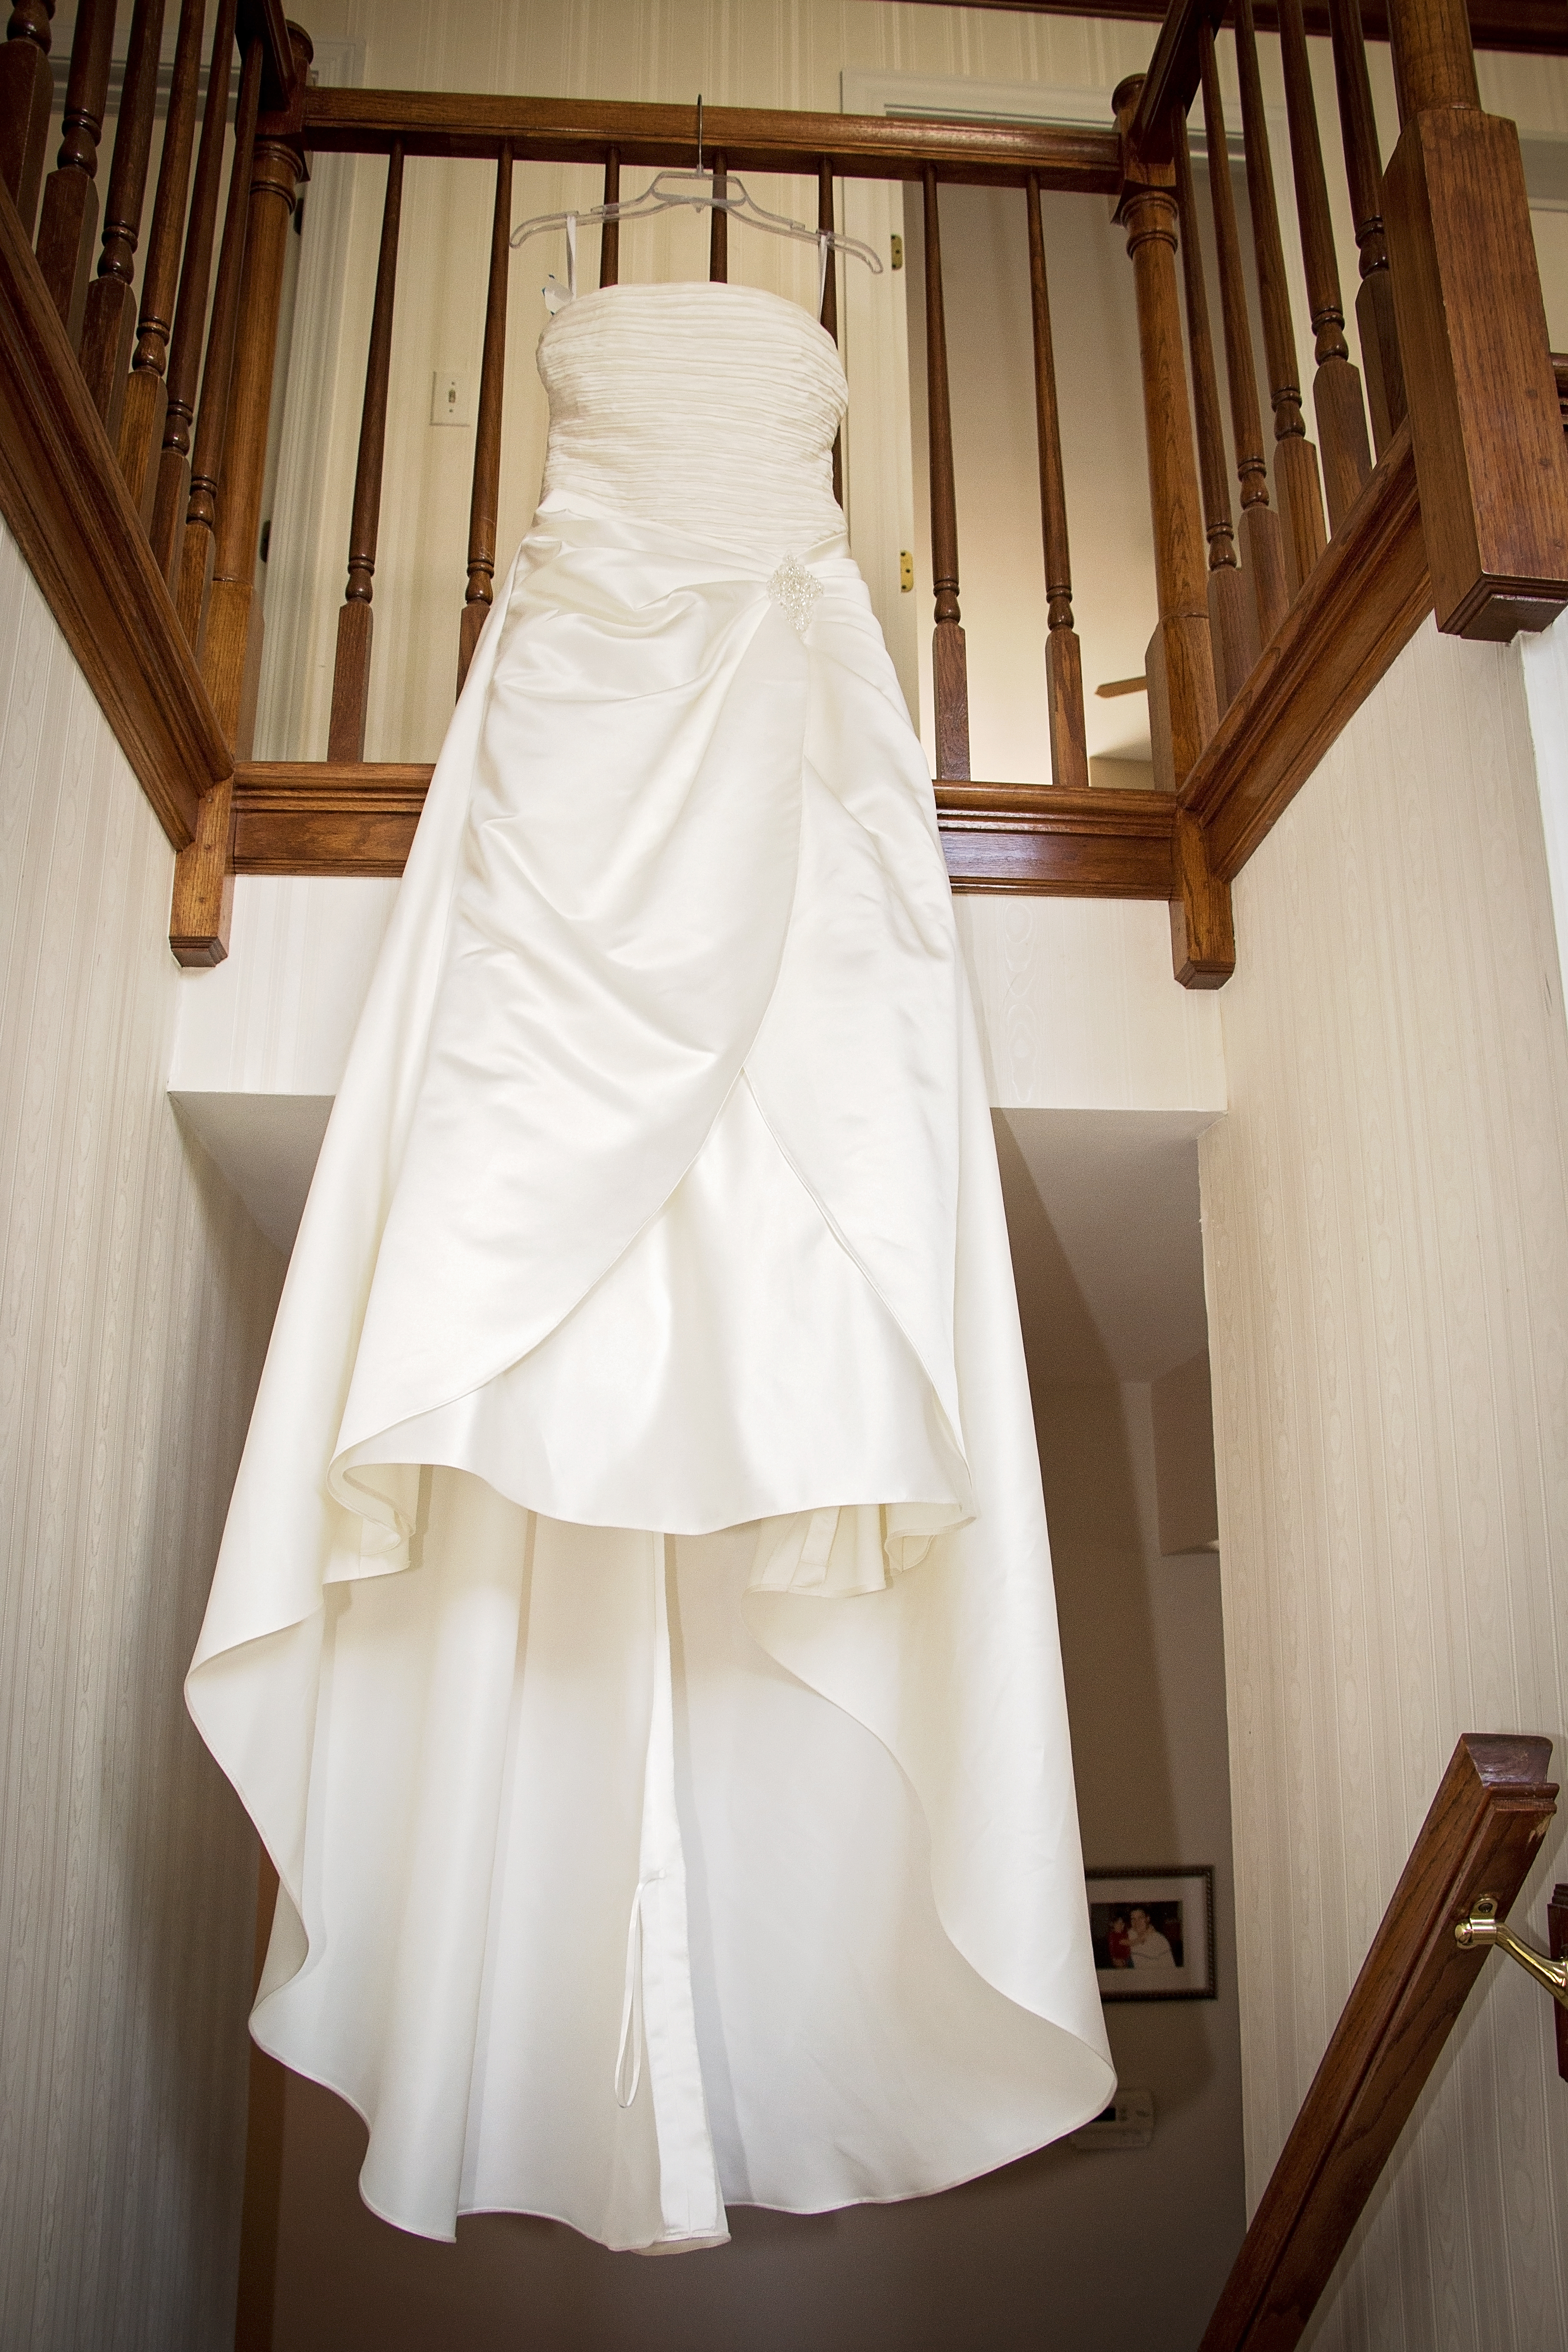 Photo of a wedding gown hanging from the staircase